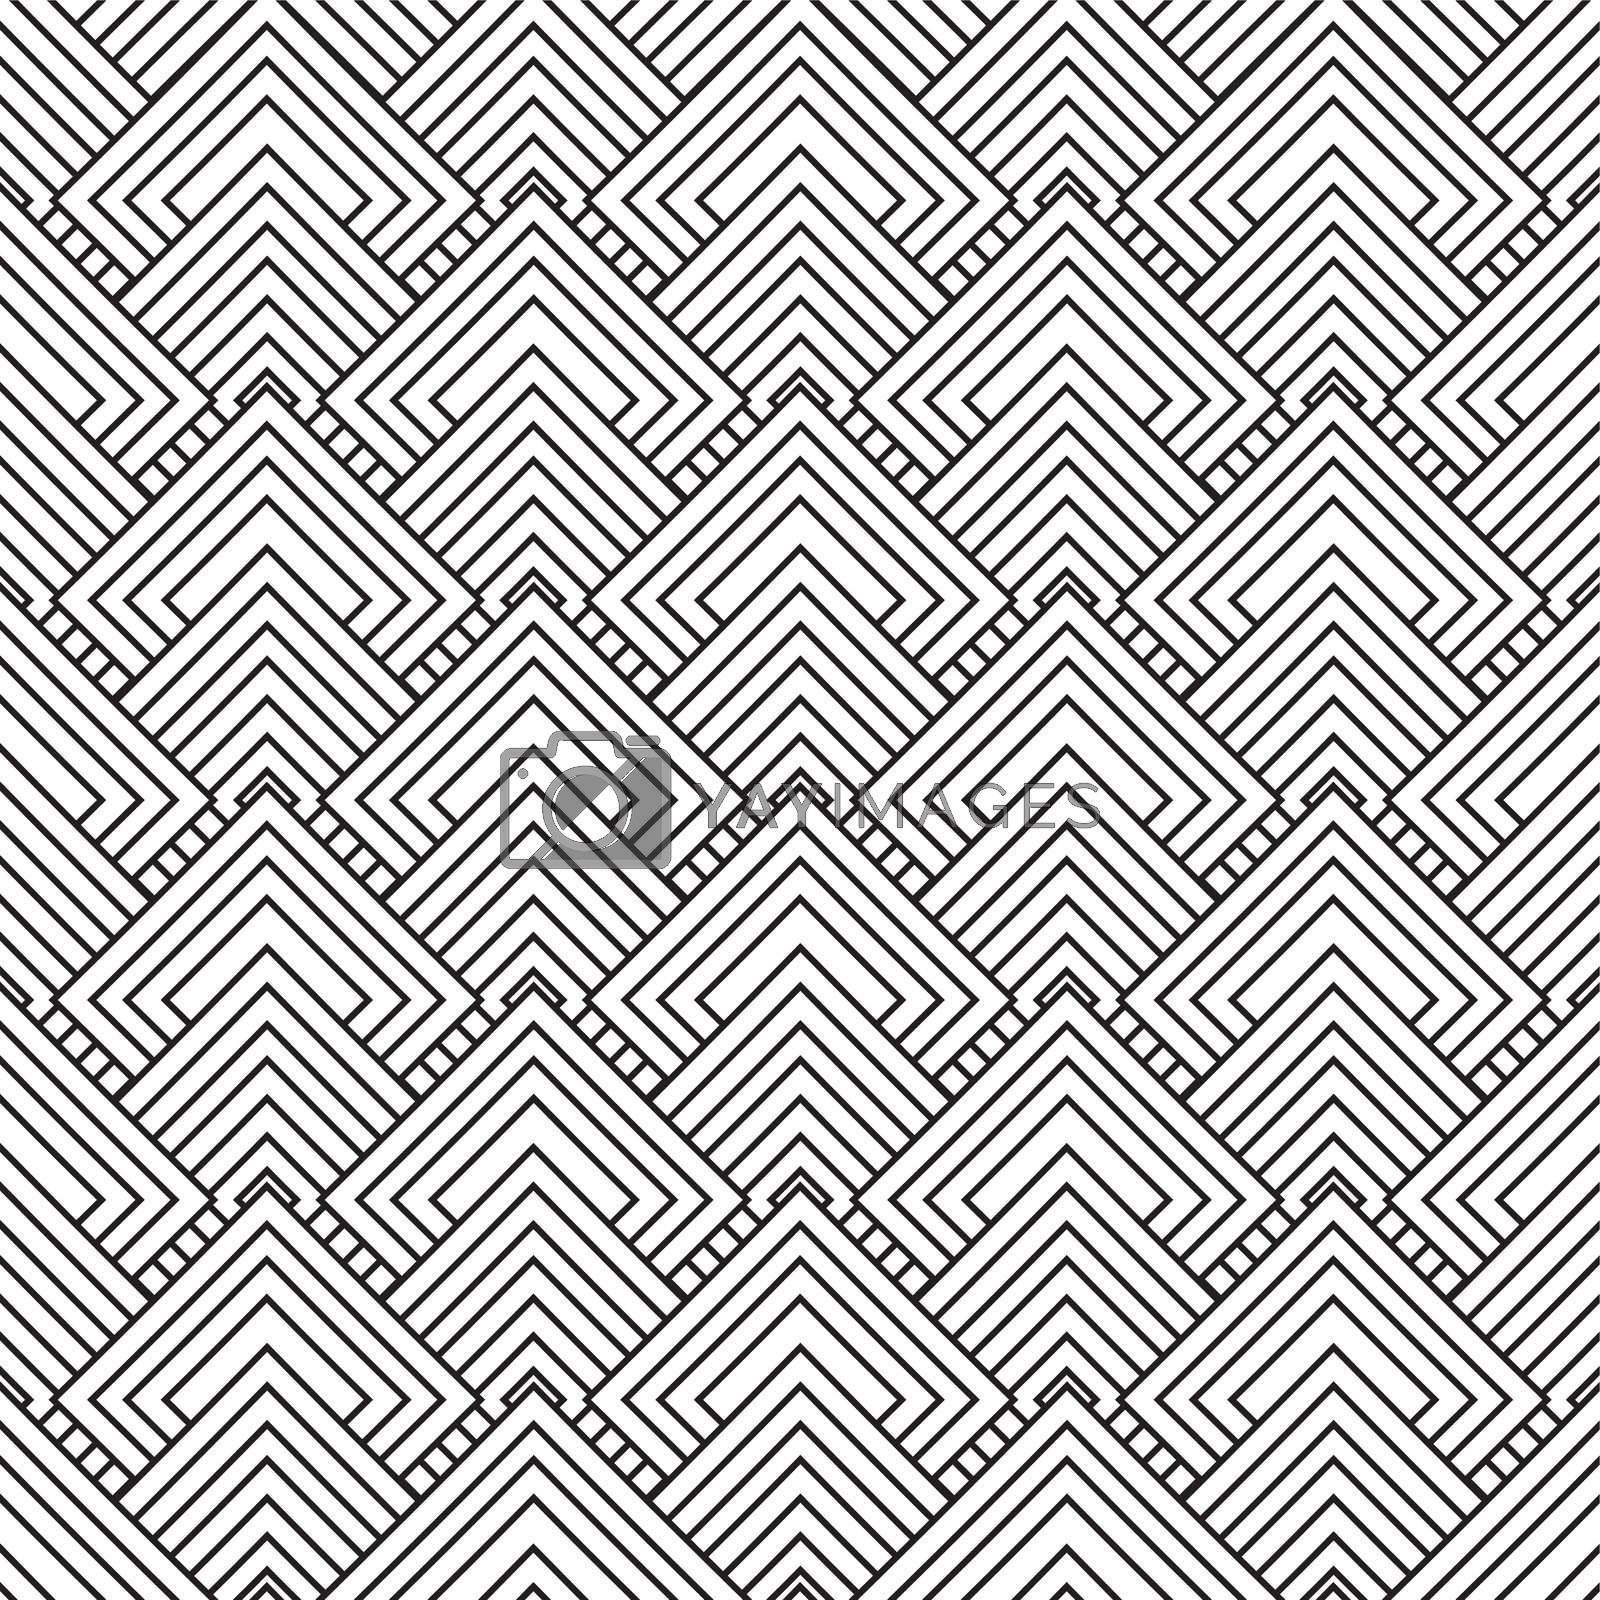 Black and white square seamless repeat design with overlap pattern